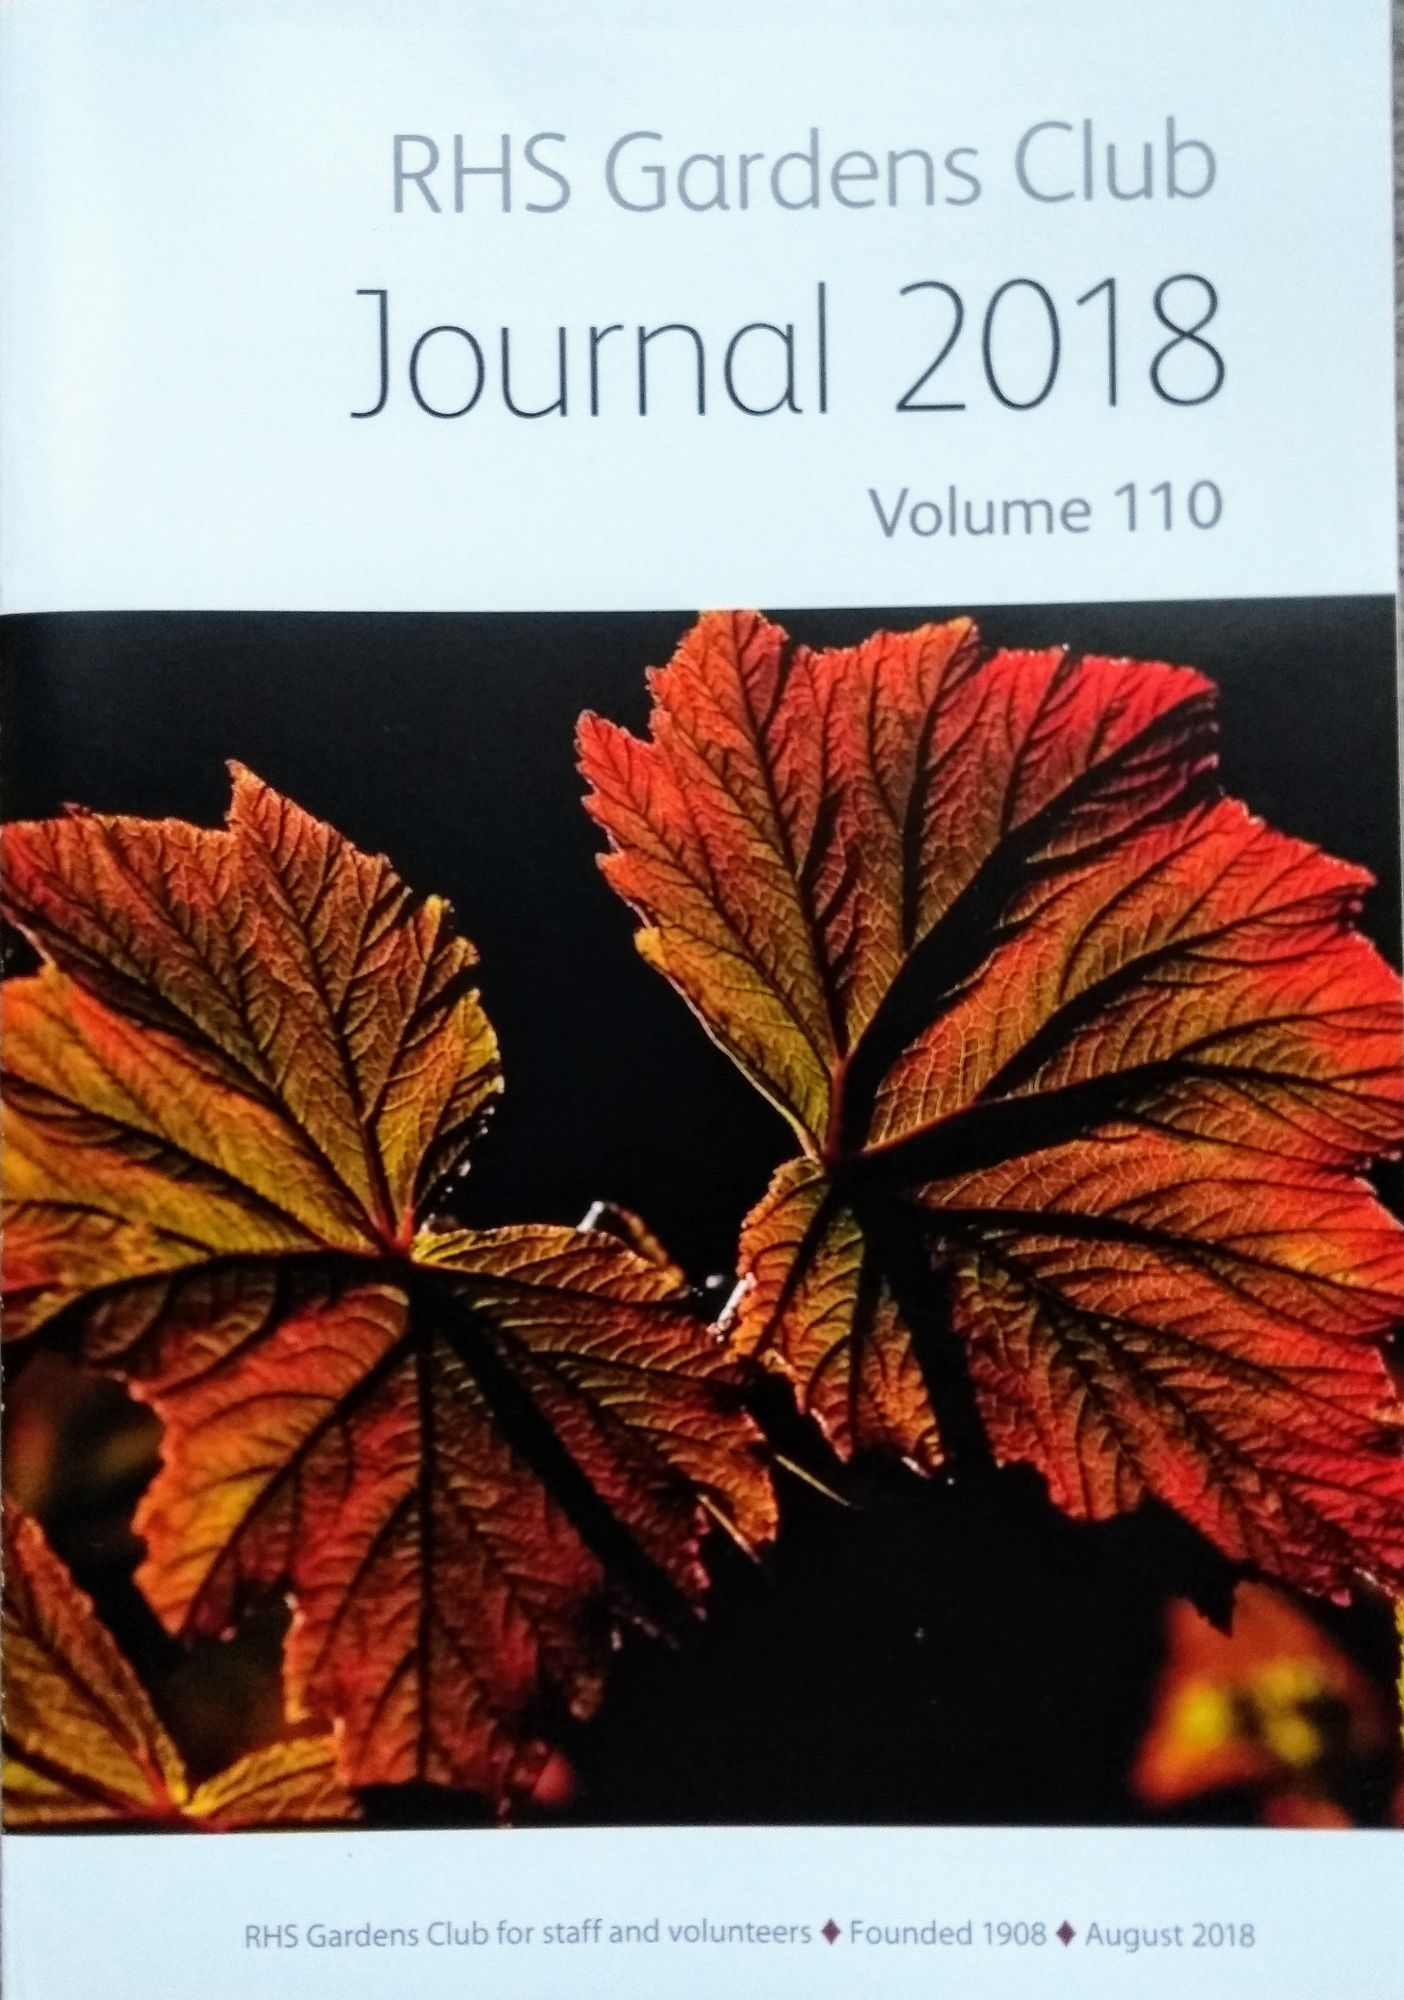 RHS Gardens Club Journal